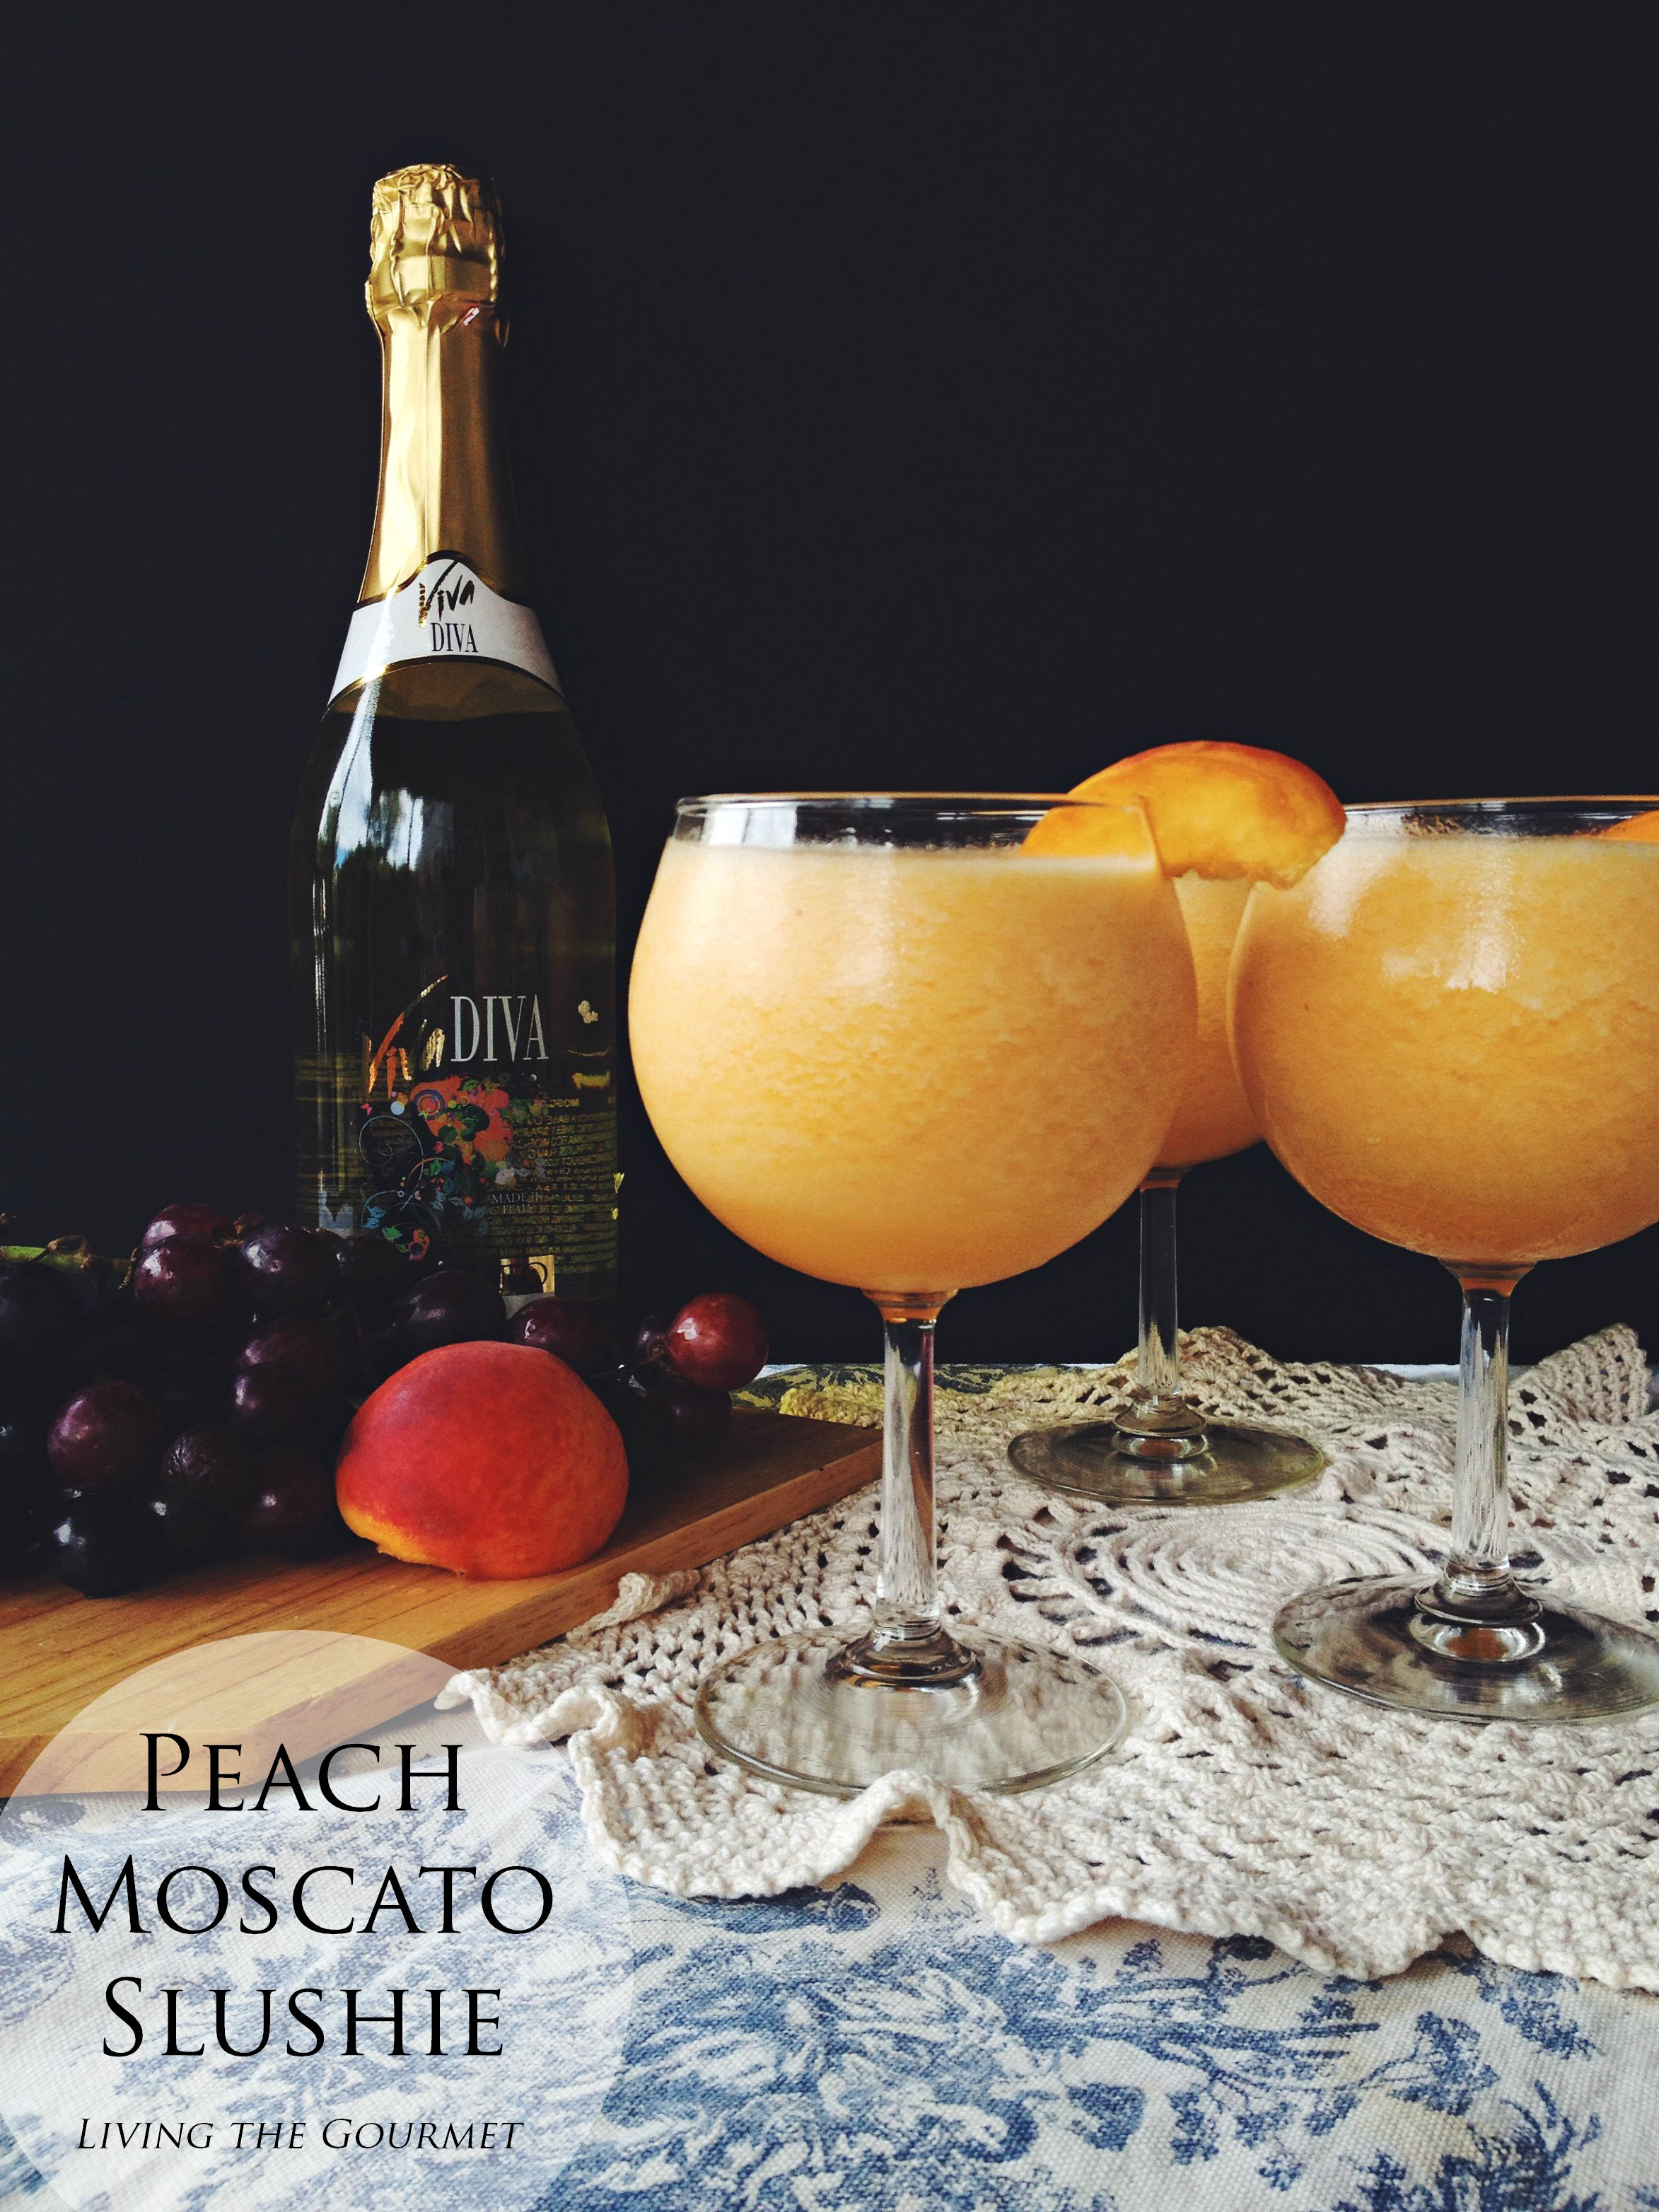 Living the Gourmet: Peach Moscato Slushie